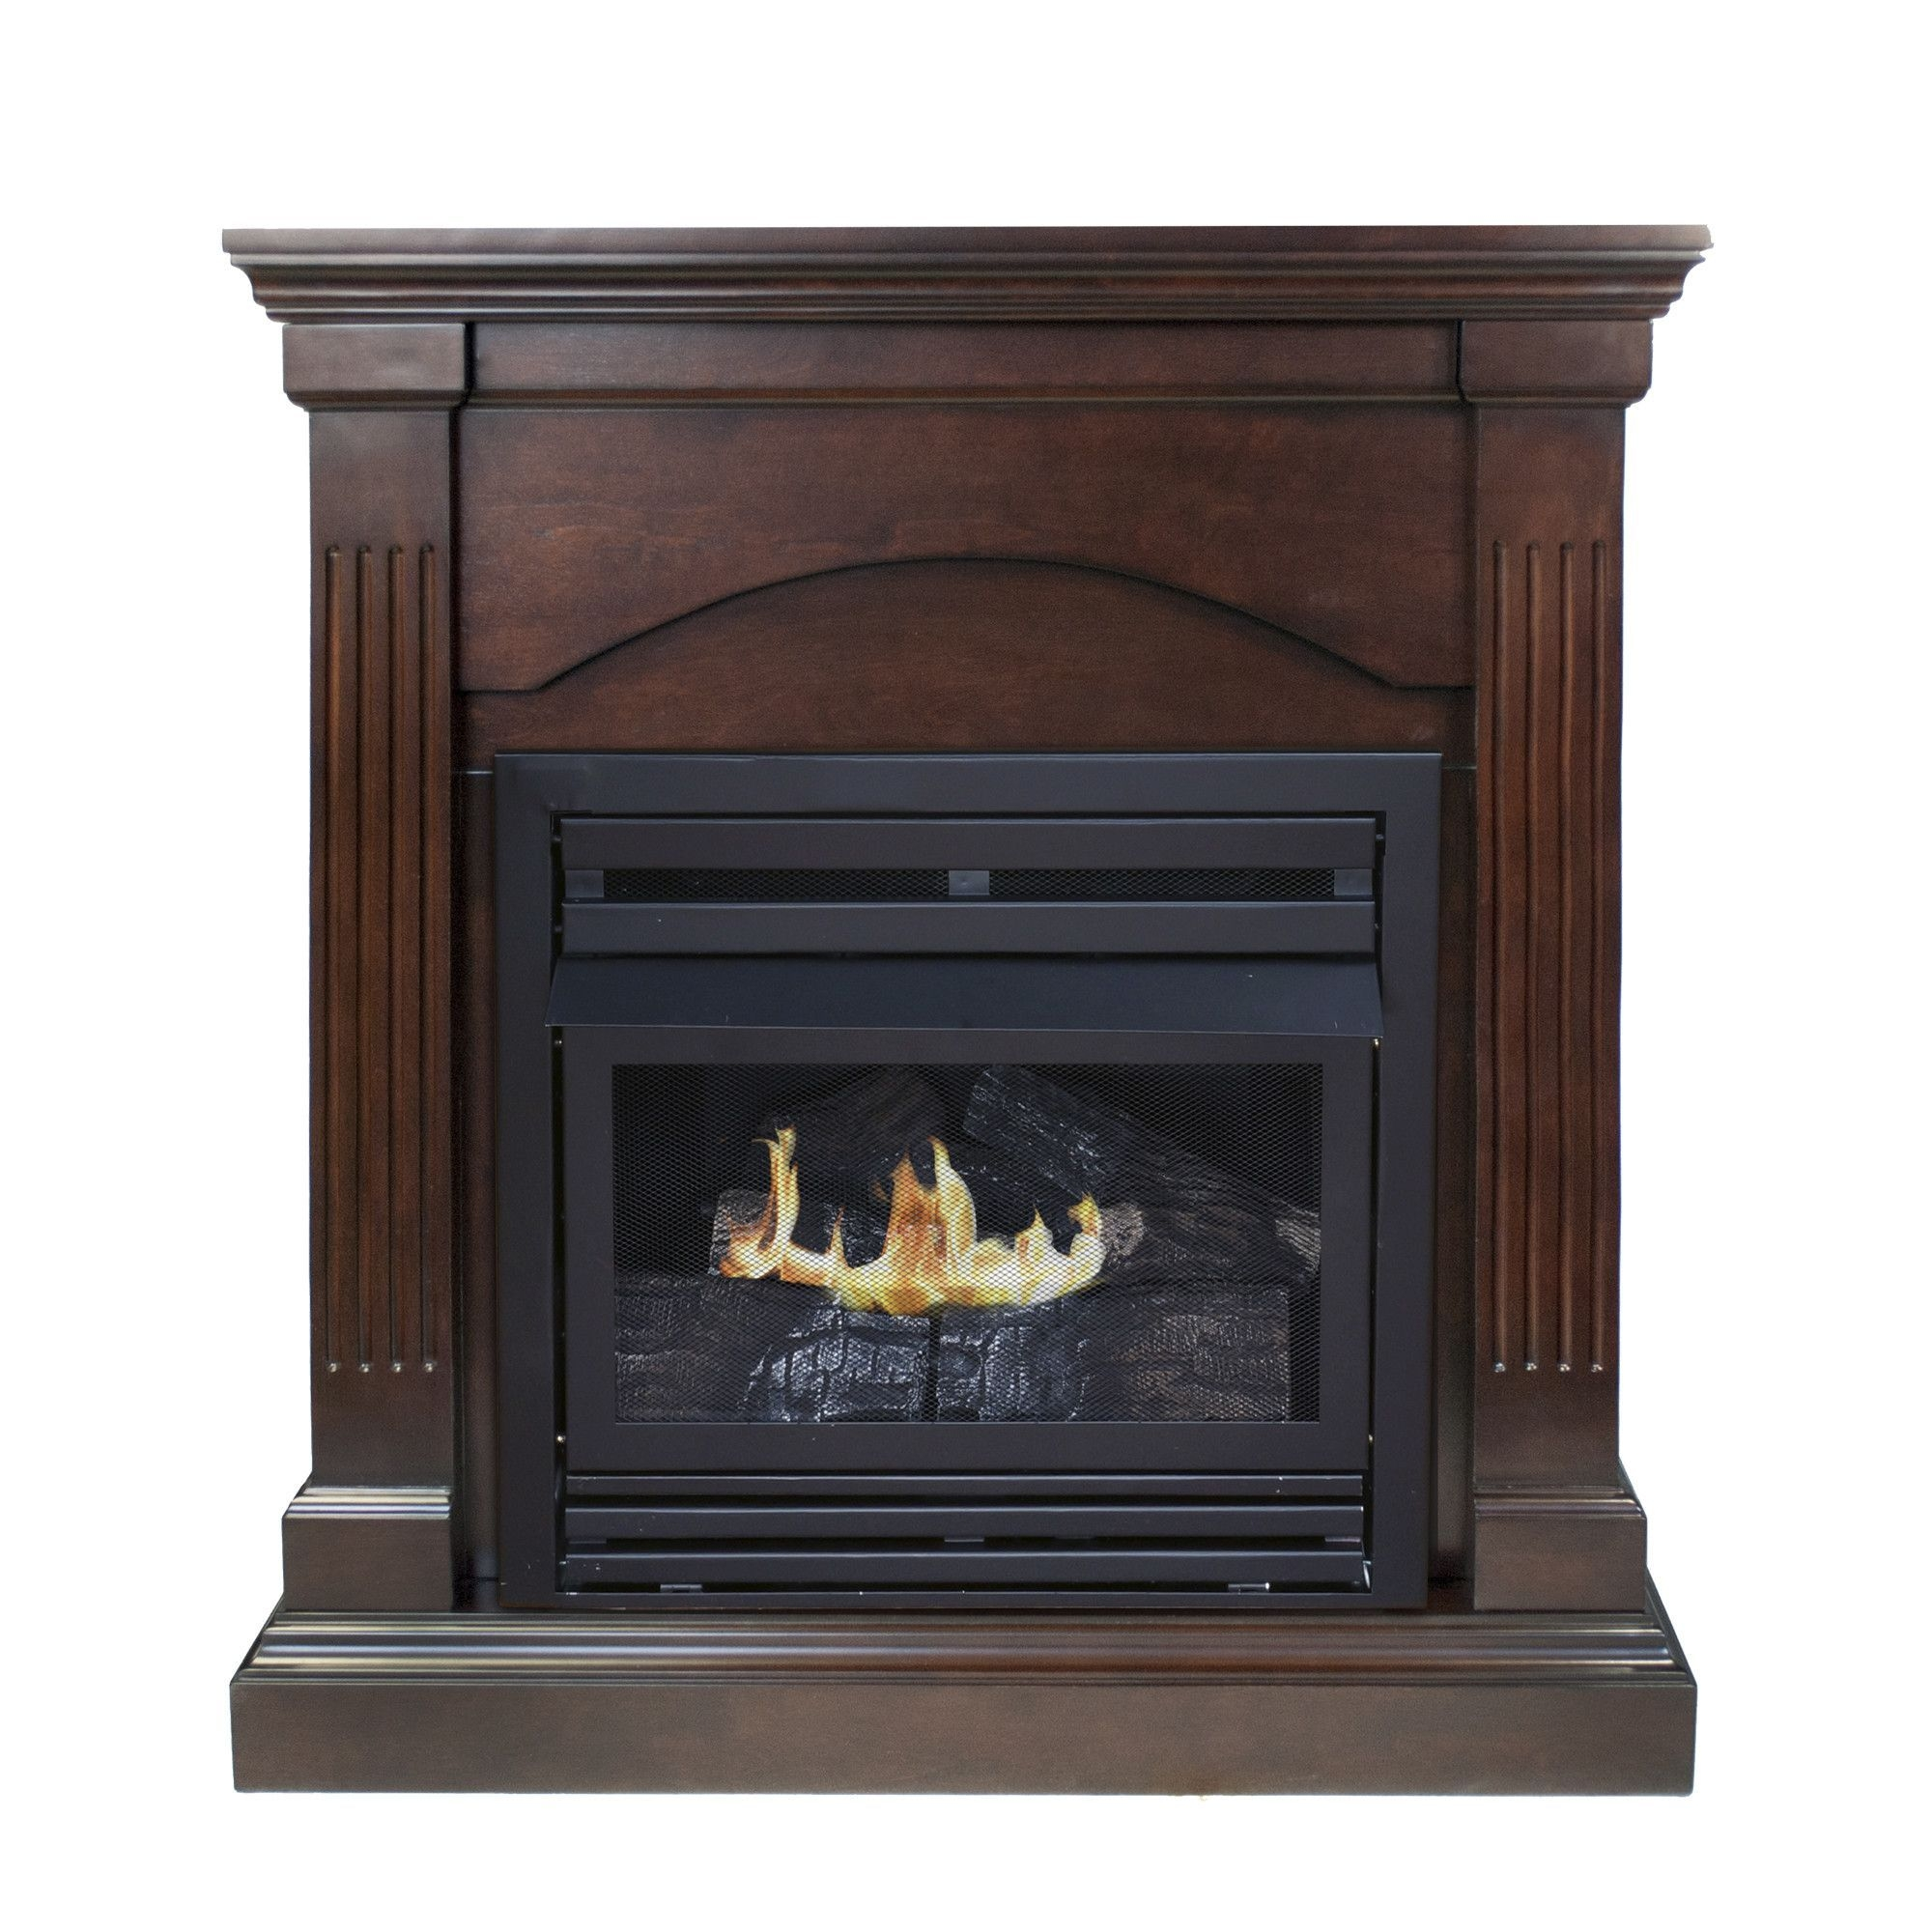 50 free standing ventless gas fireplace up to 70 off visual hunt rh visualhunt com vent free natural gas fireplace for sale ventless gas fireplace for sale near me